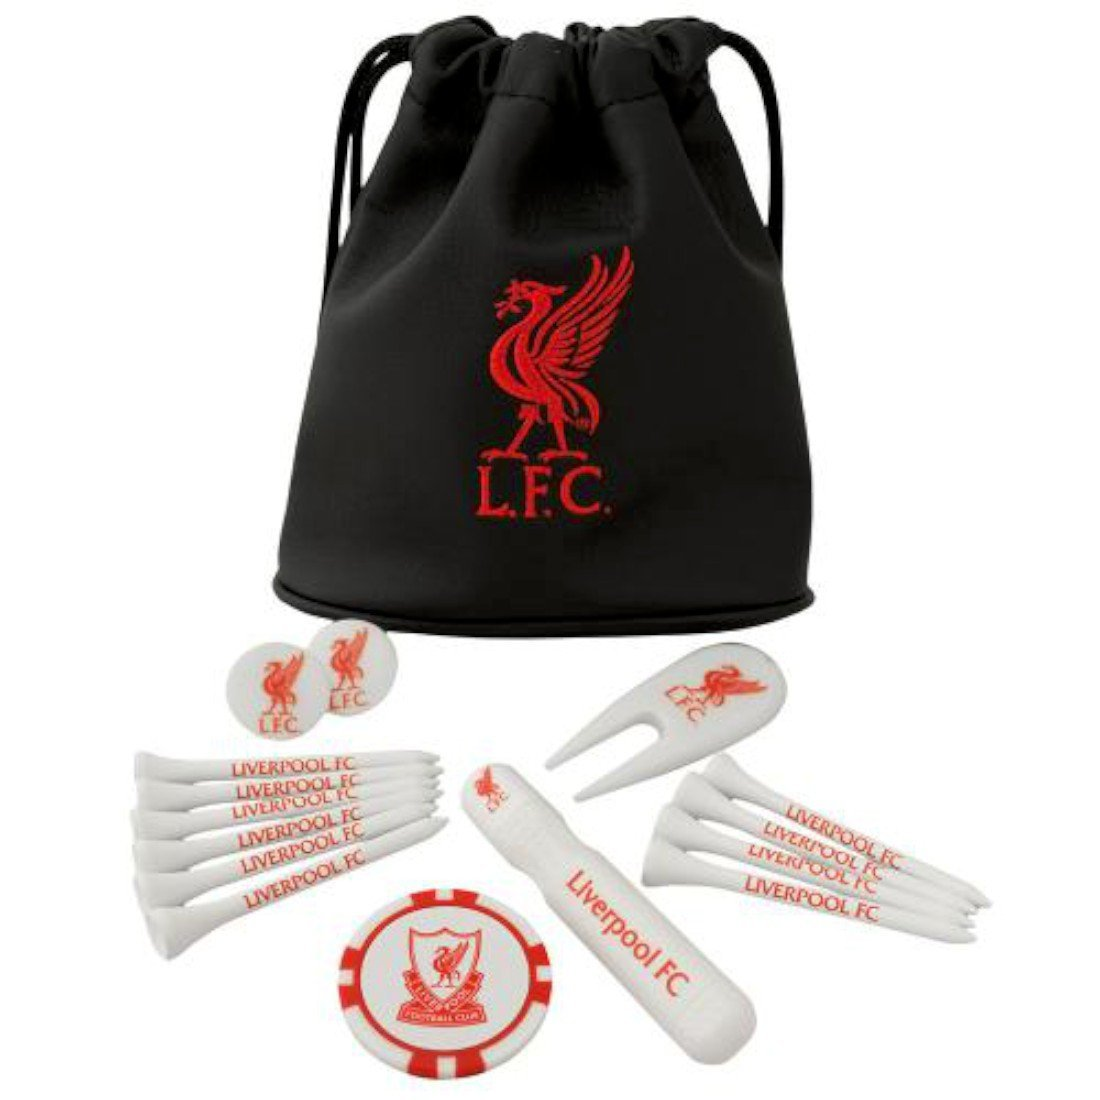 Liverpool FC Tote Bag Golf Gift Set - Great Gift for any Liverpool FC Golf Fan - Includes golf tees, ball markers and more - Official Liverpool FC Product - Makes a Great Gift for LFC Golf Fans